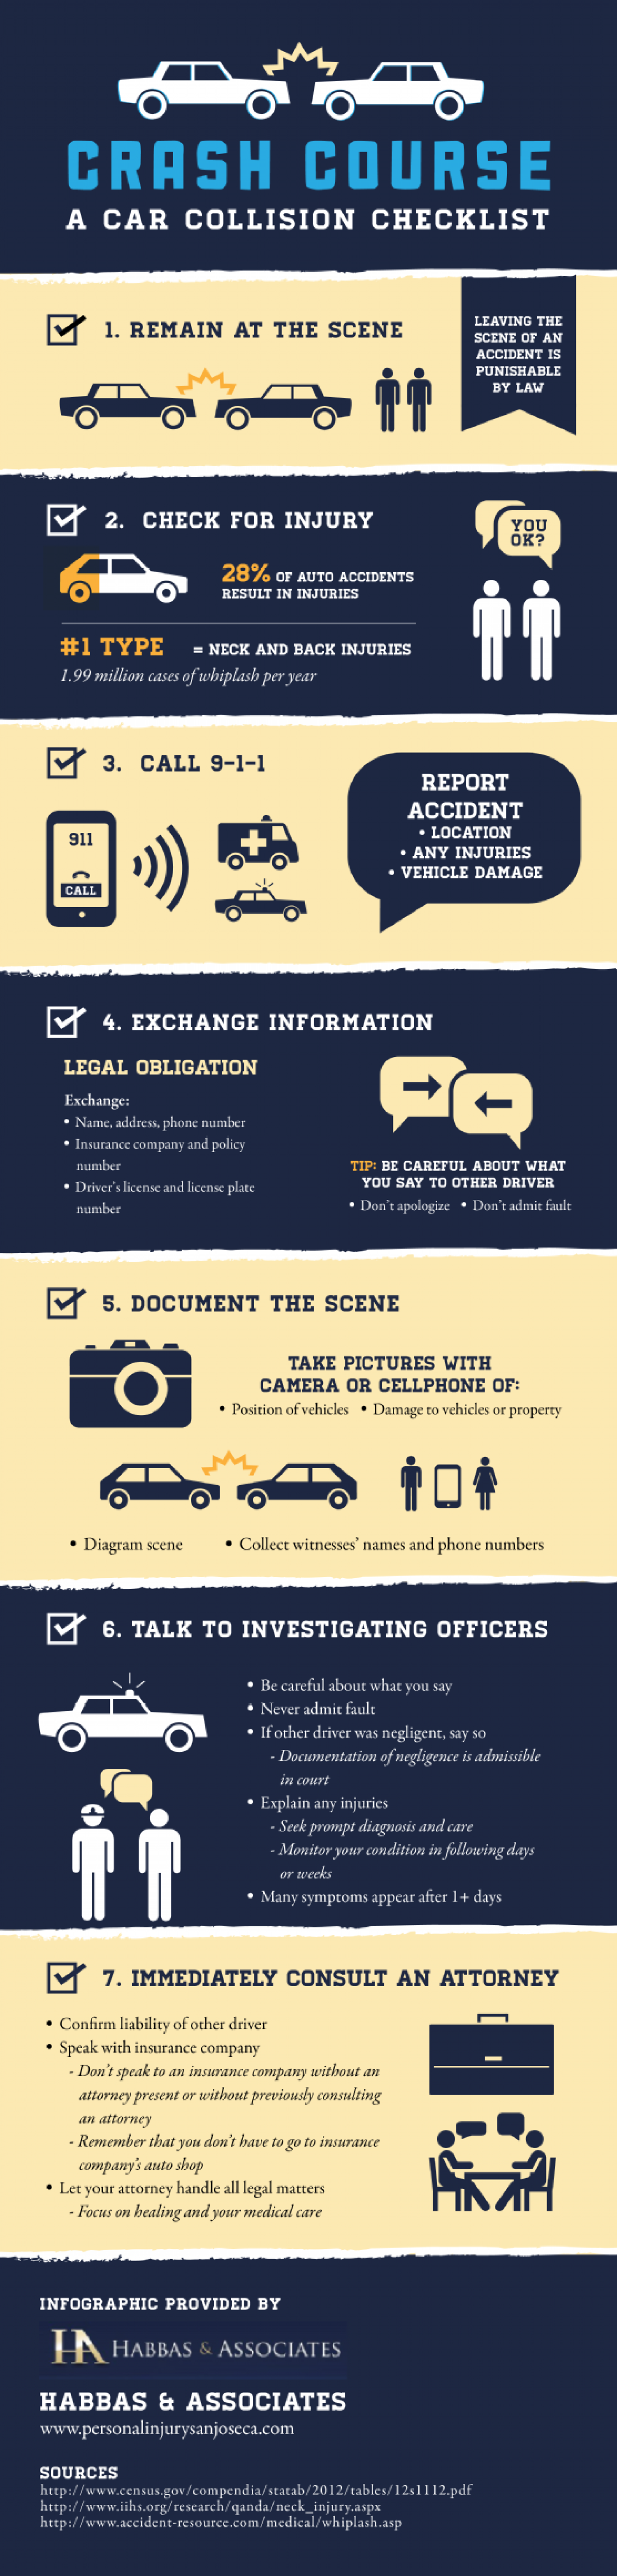 Crash Course: A Car Collision Checklist Infographic